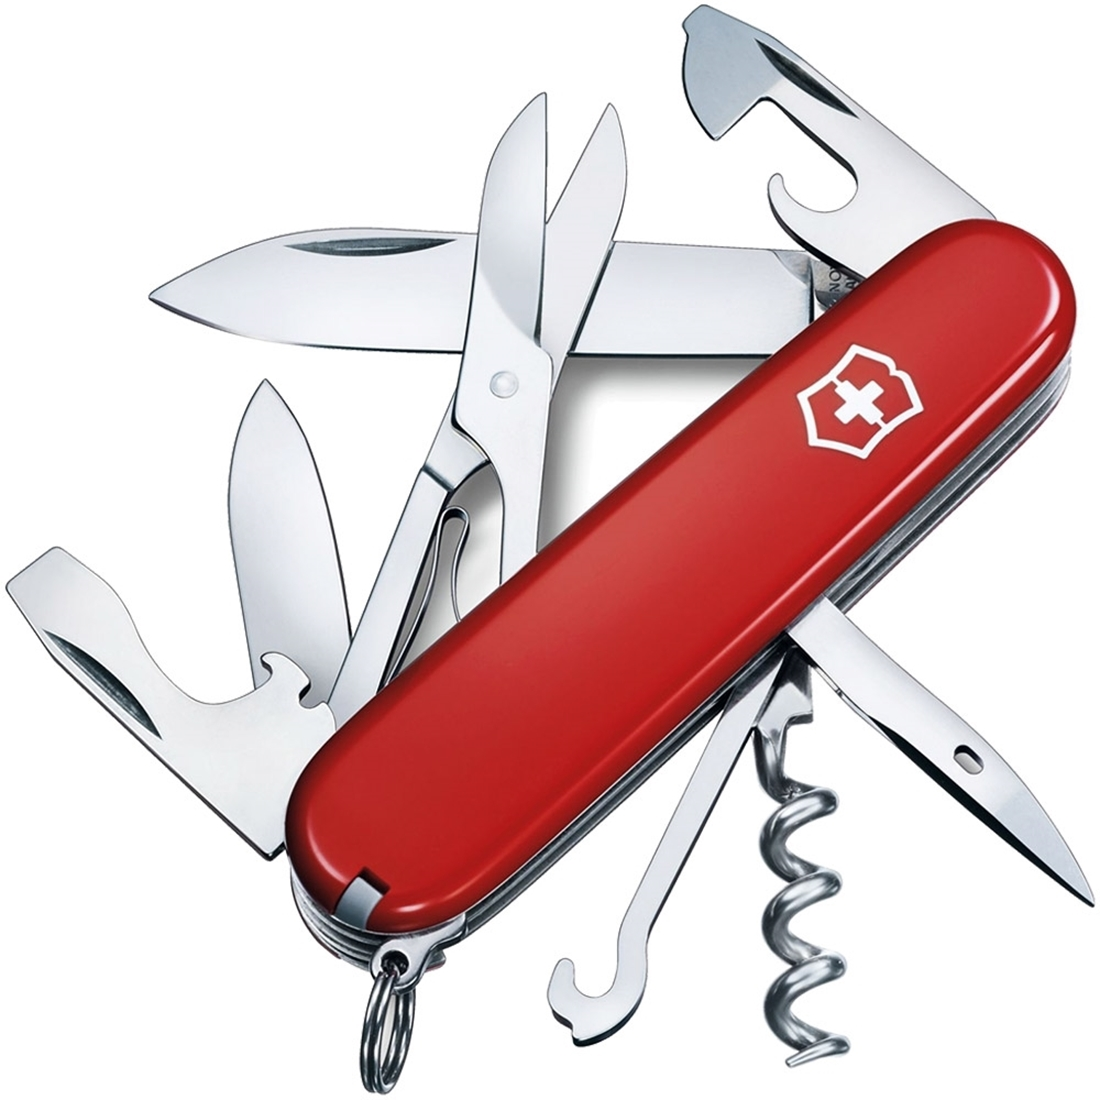 Victorinox Climber Pocket Knife